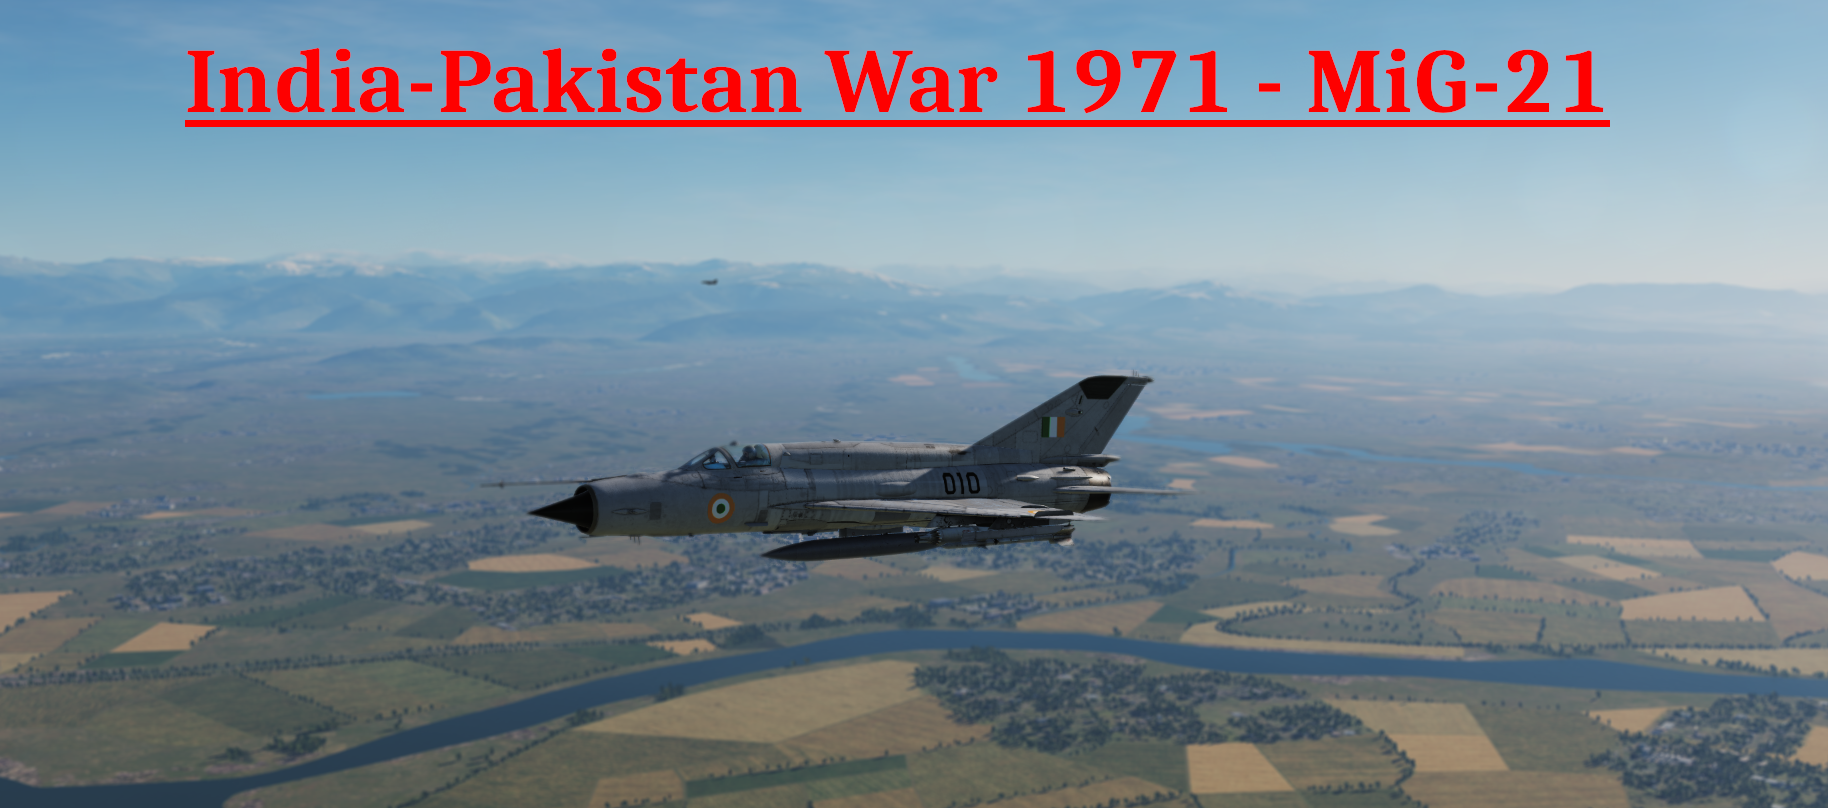 India-Pakistan War 1971 - MiG-21 Campaign STABLE released DCS World version